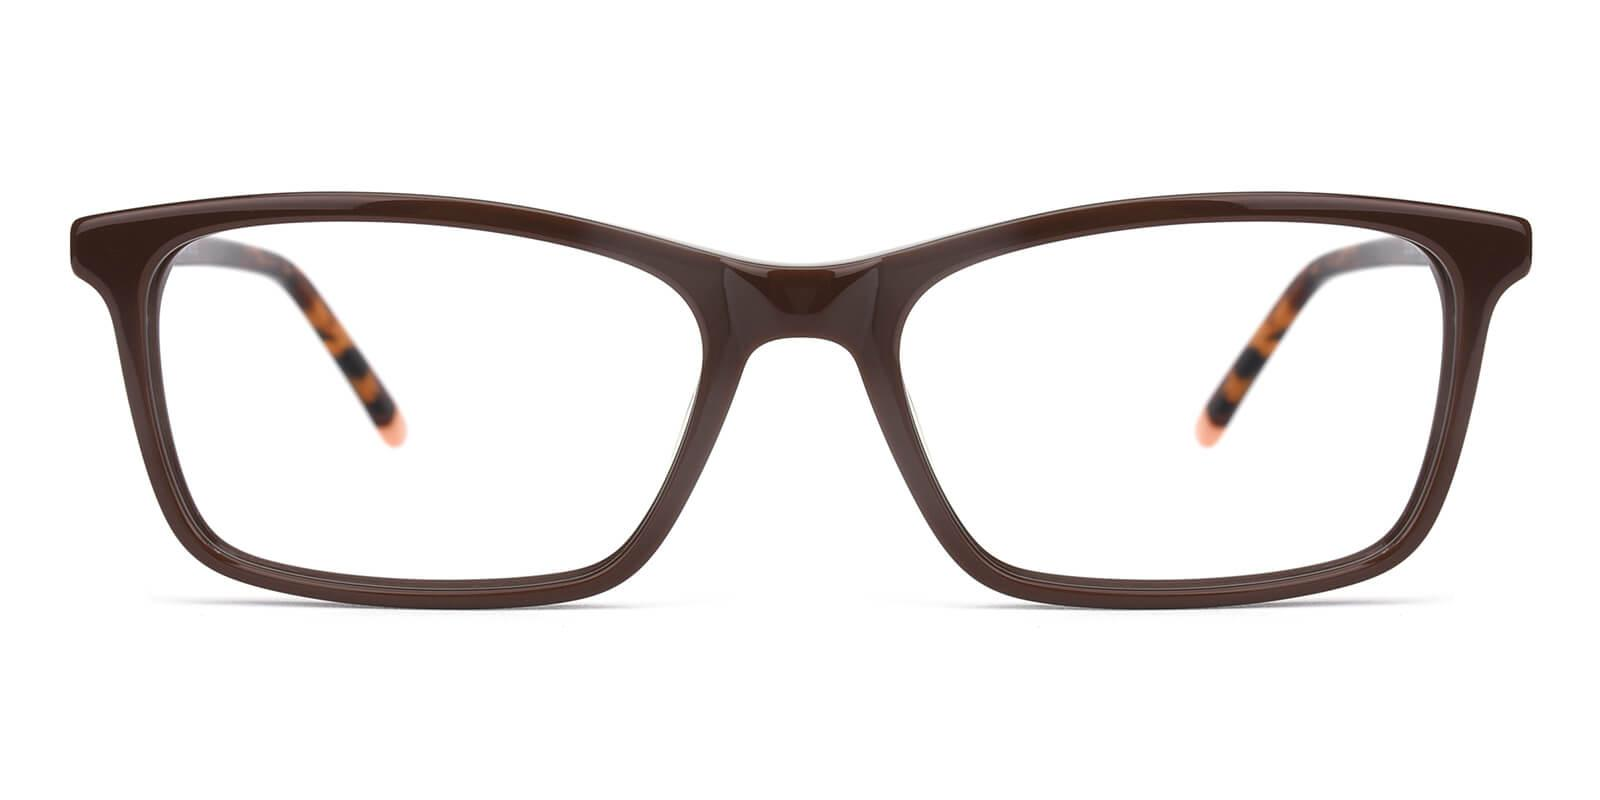 Crane-Brown-Rectangle-Acetate-Eyeglasses-additional2